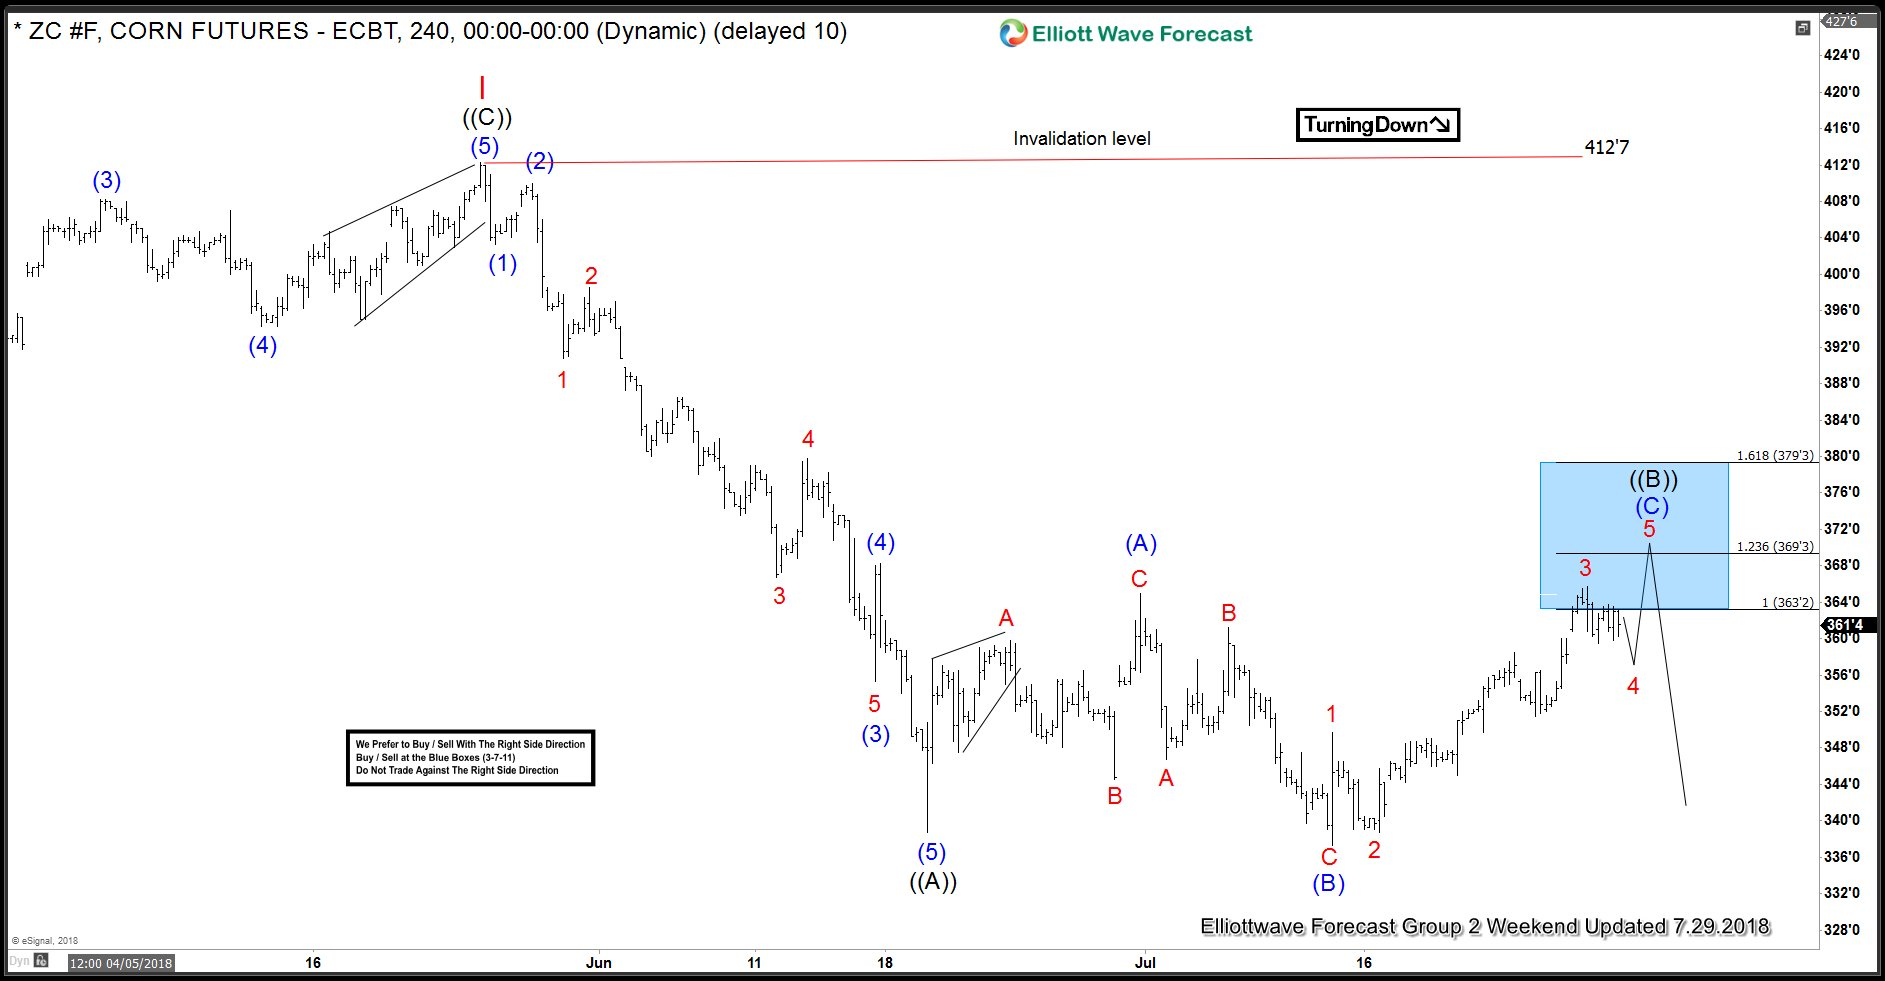 Corn Futures Forecasting The Decline After Elliott Wave Flat